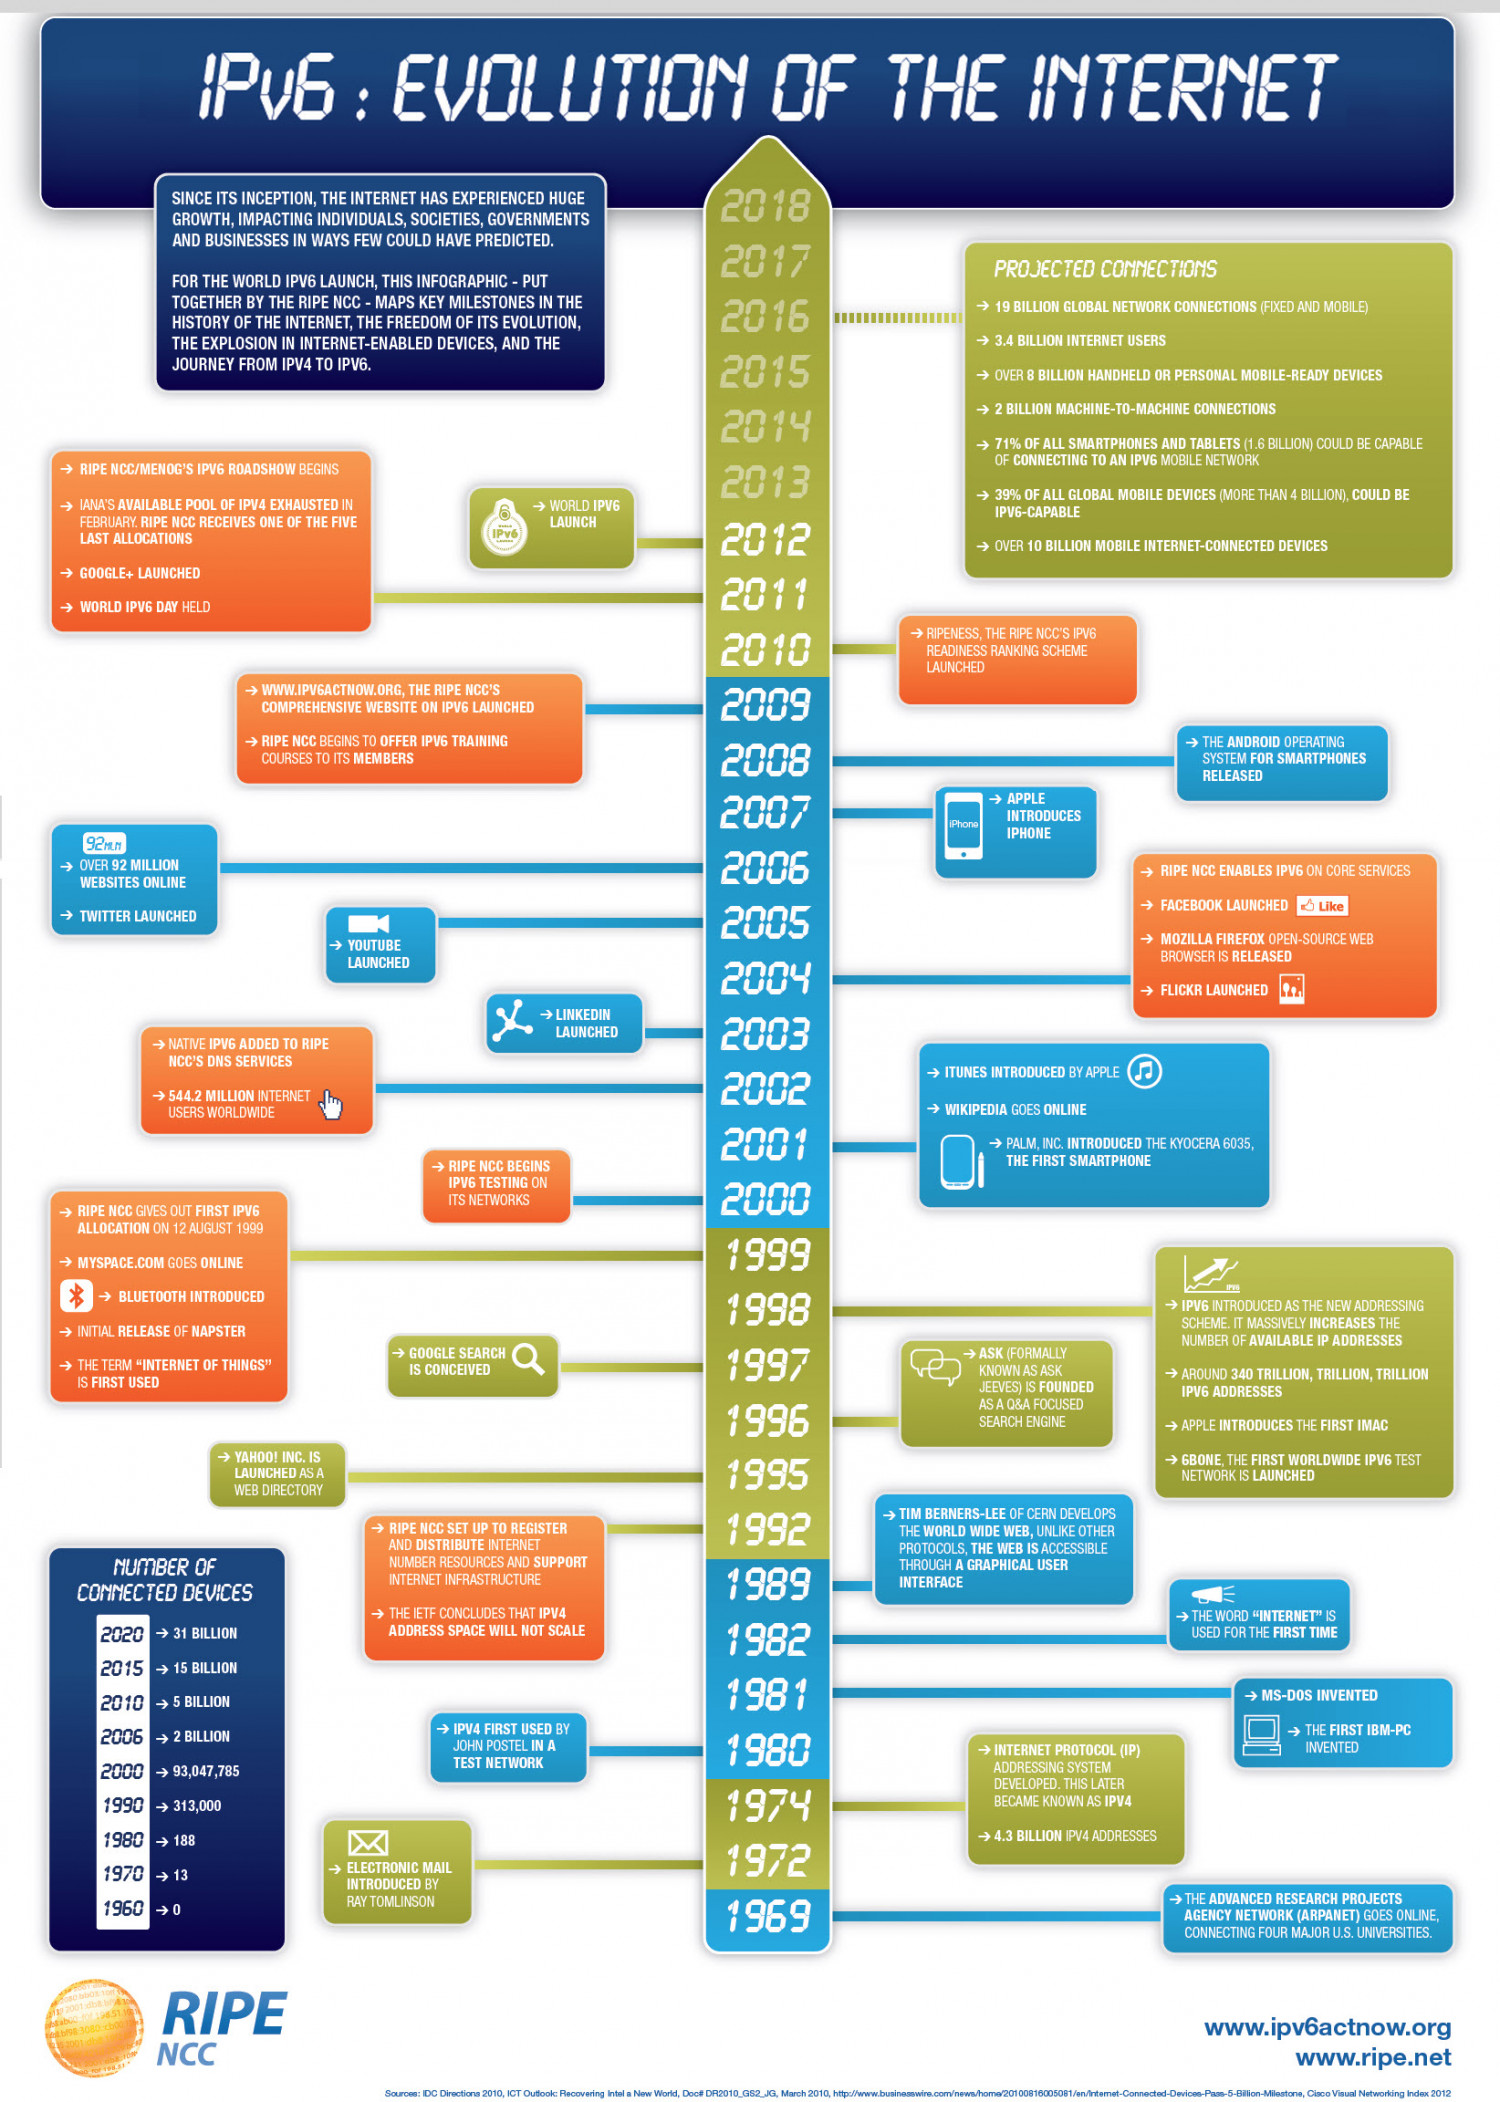 IPv6: The evolution of the Internet Infographic